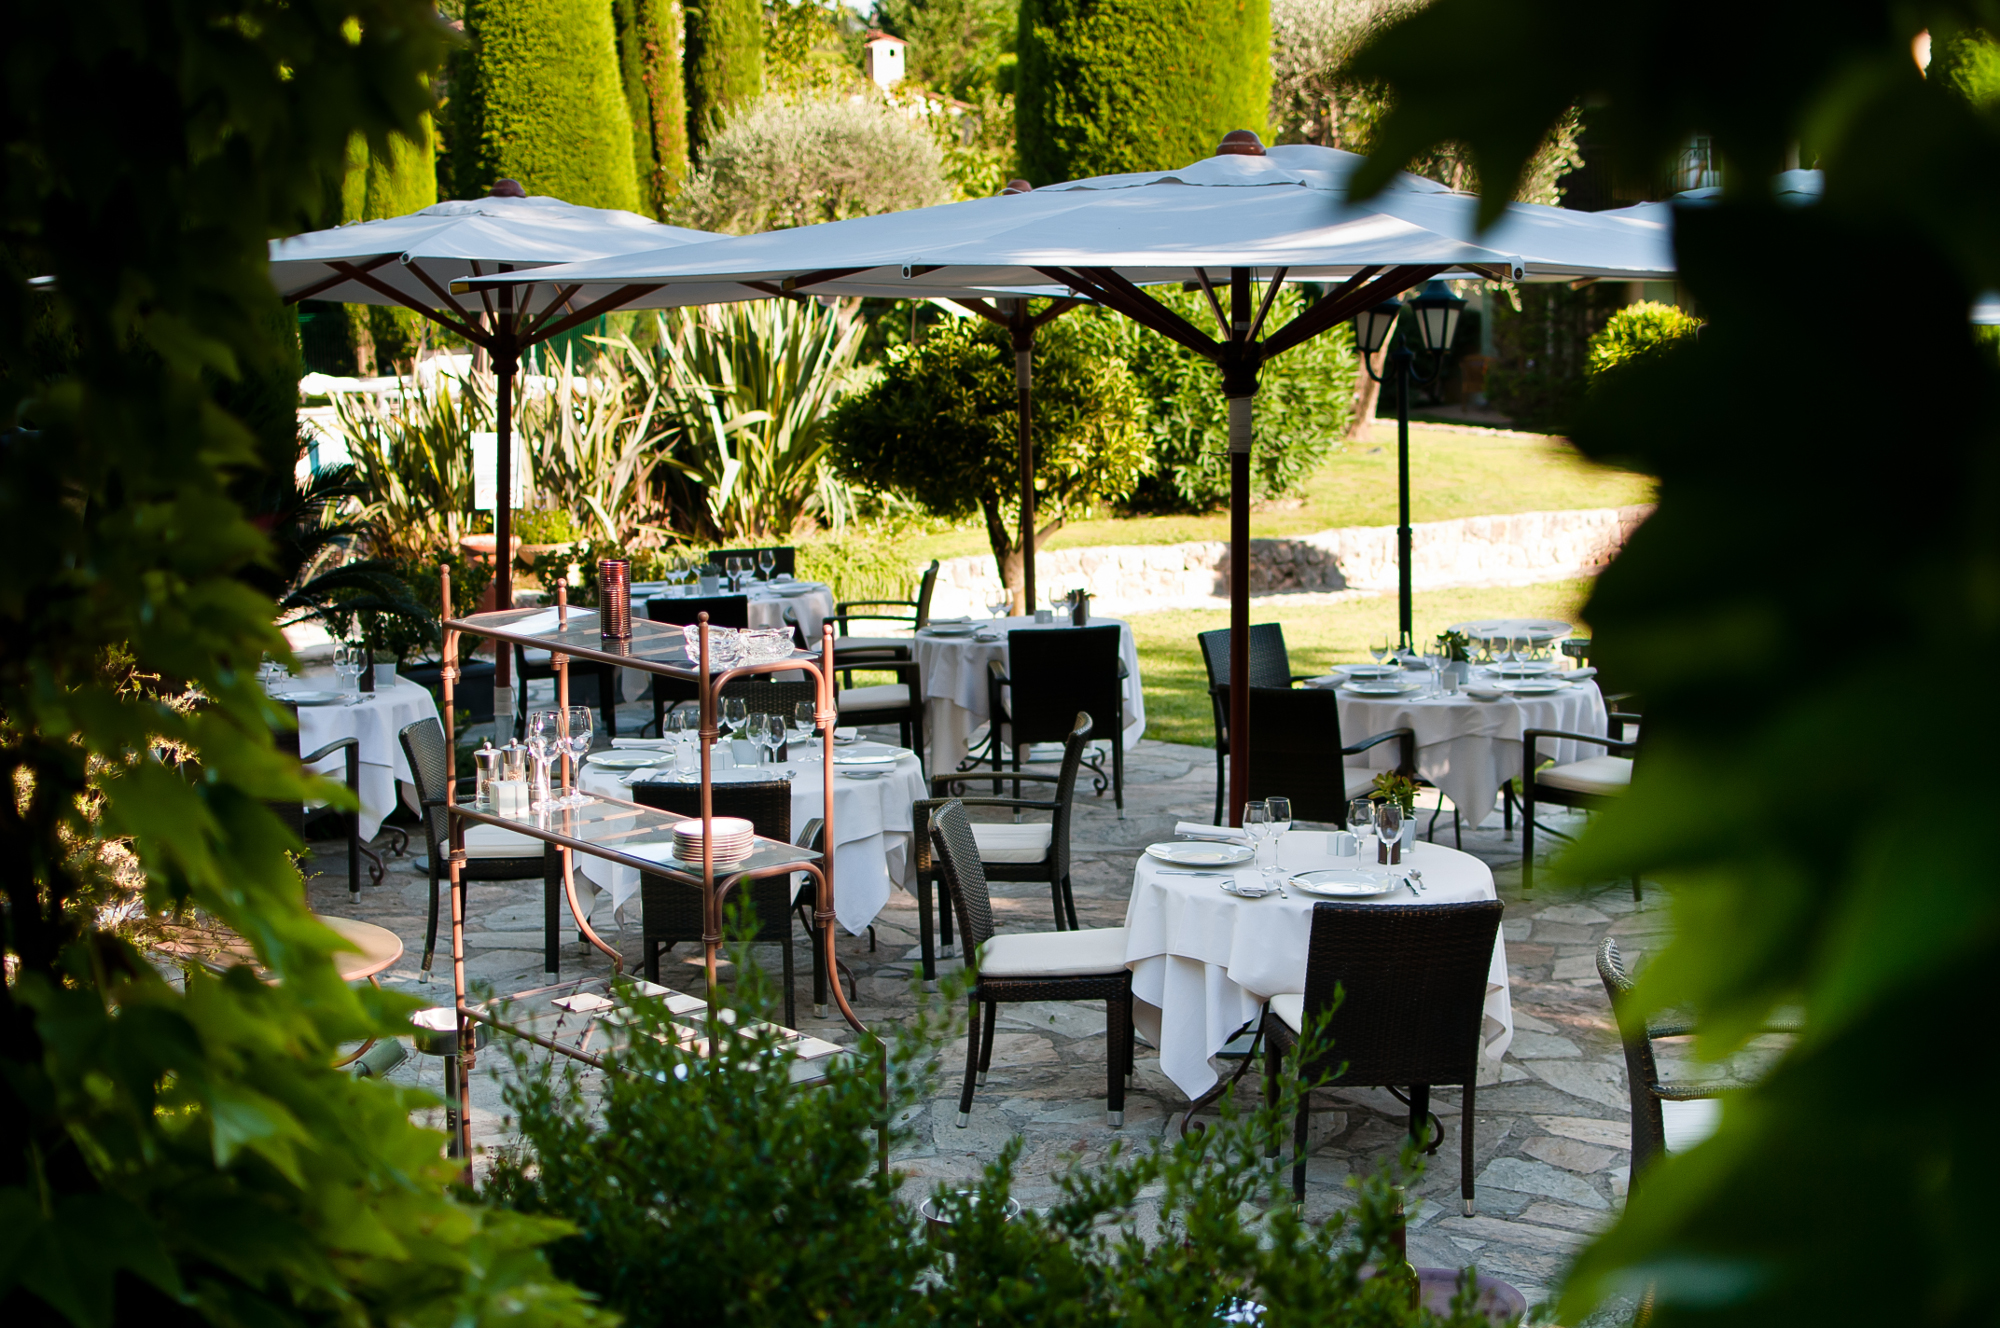 Restaurant le jardin bar room service menu de l for Restaurant le jardin mazargues